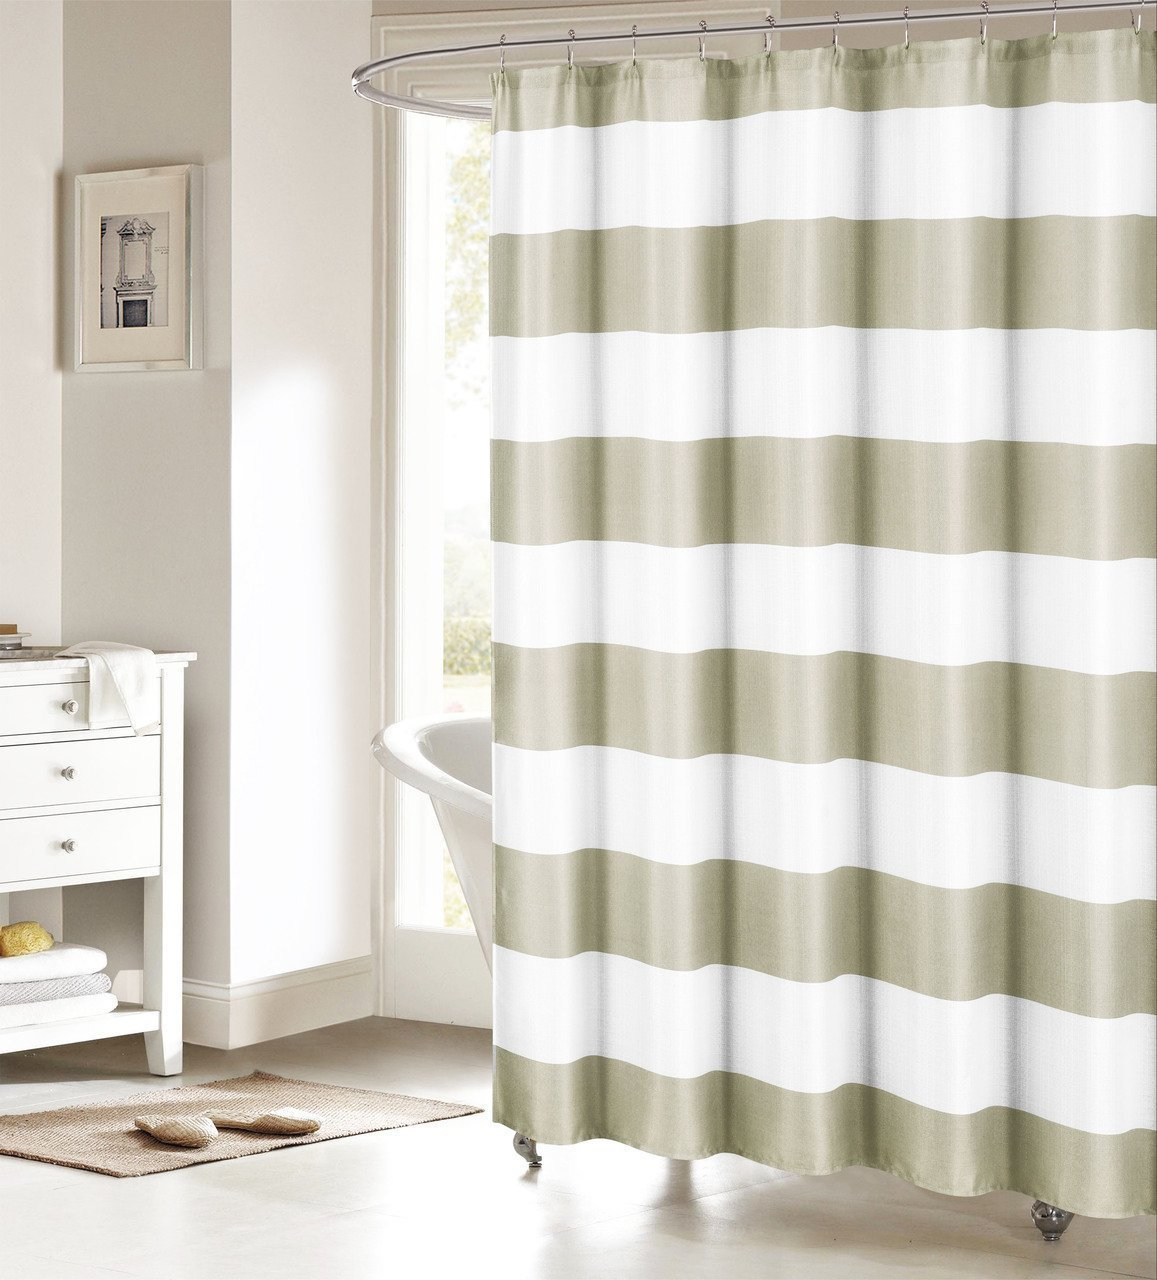 Peva shower curtain nautical design - Memory Home Fabric Shower Curtain Nautical Stripe Design Sand And White Bathroom Decor Waterproof Polyester Shower